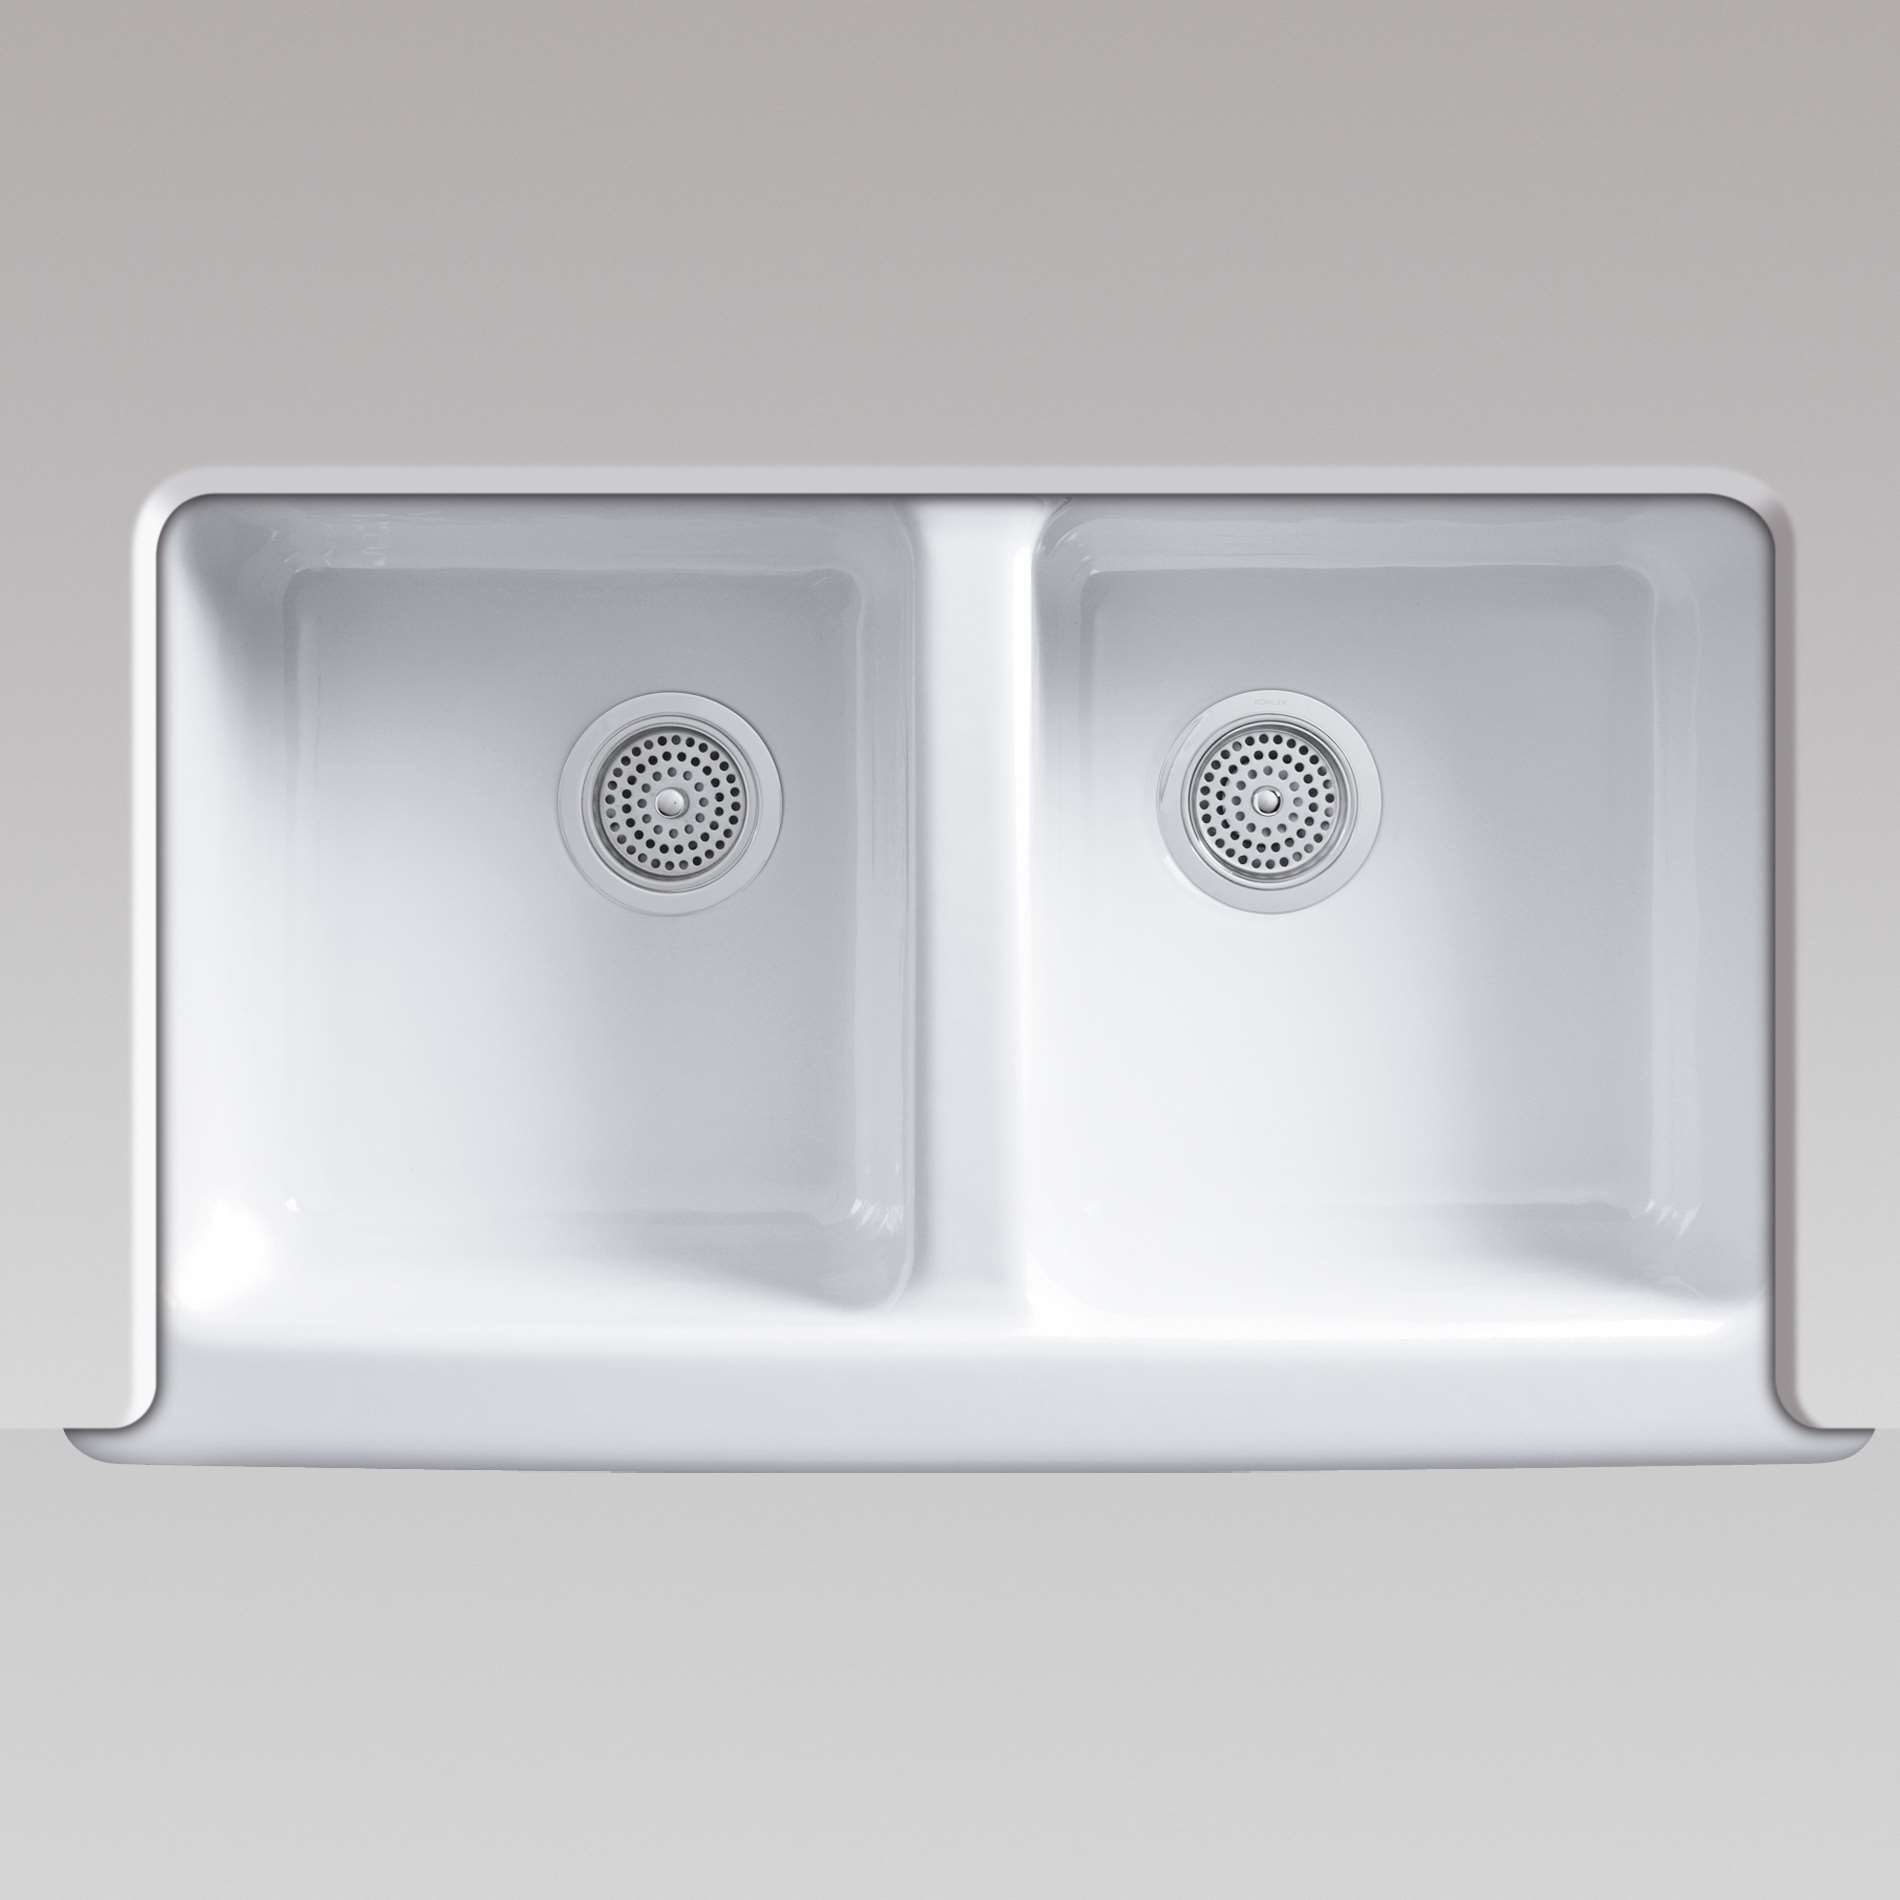 Kohler hawthorne 6534 white cast iron sink kitchen for Cast iron sink manufacturers